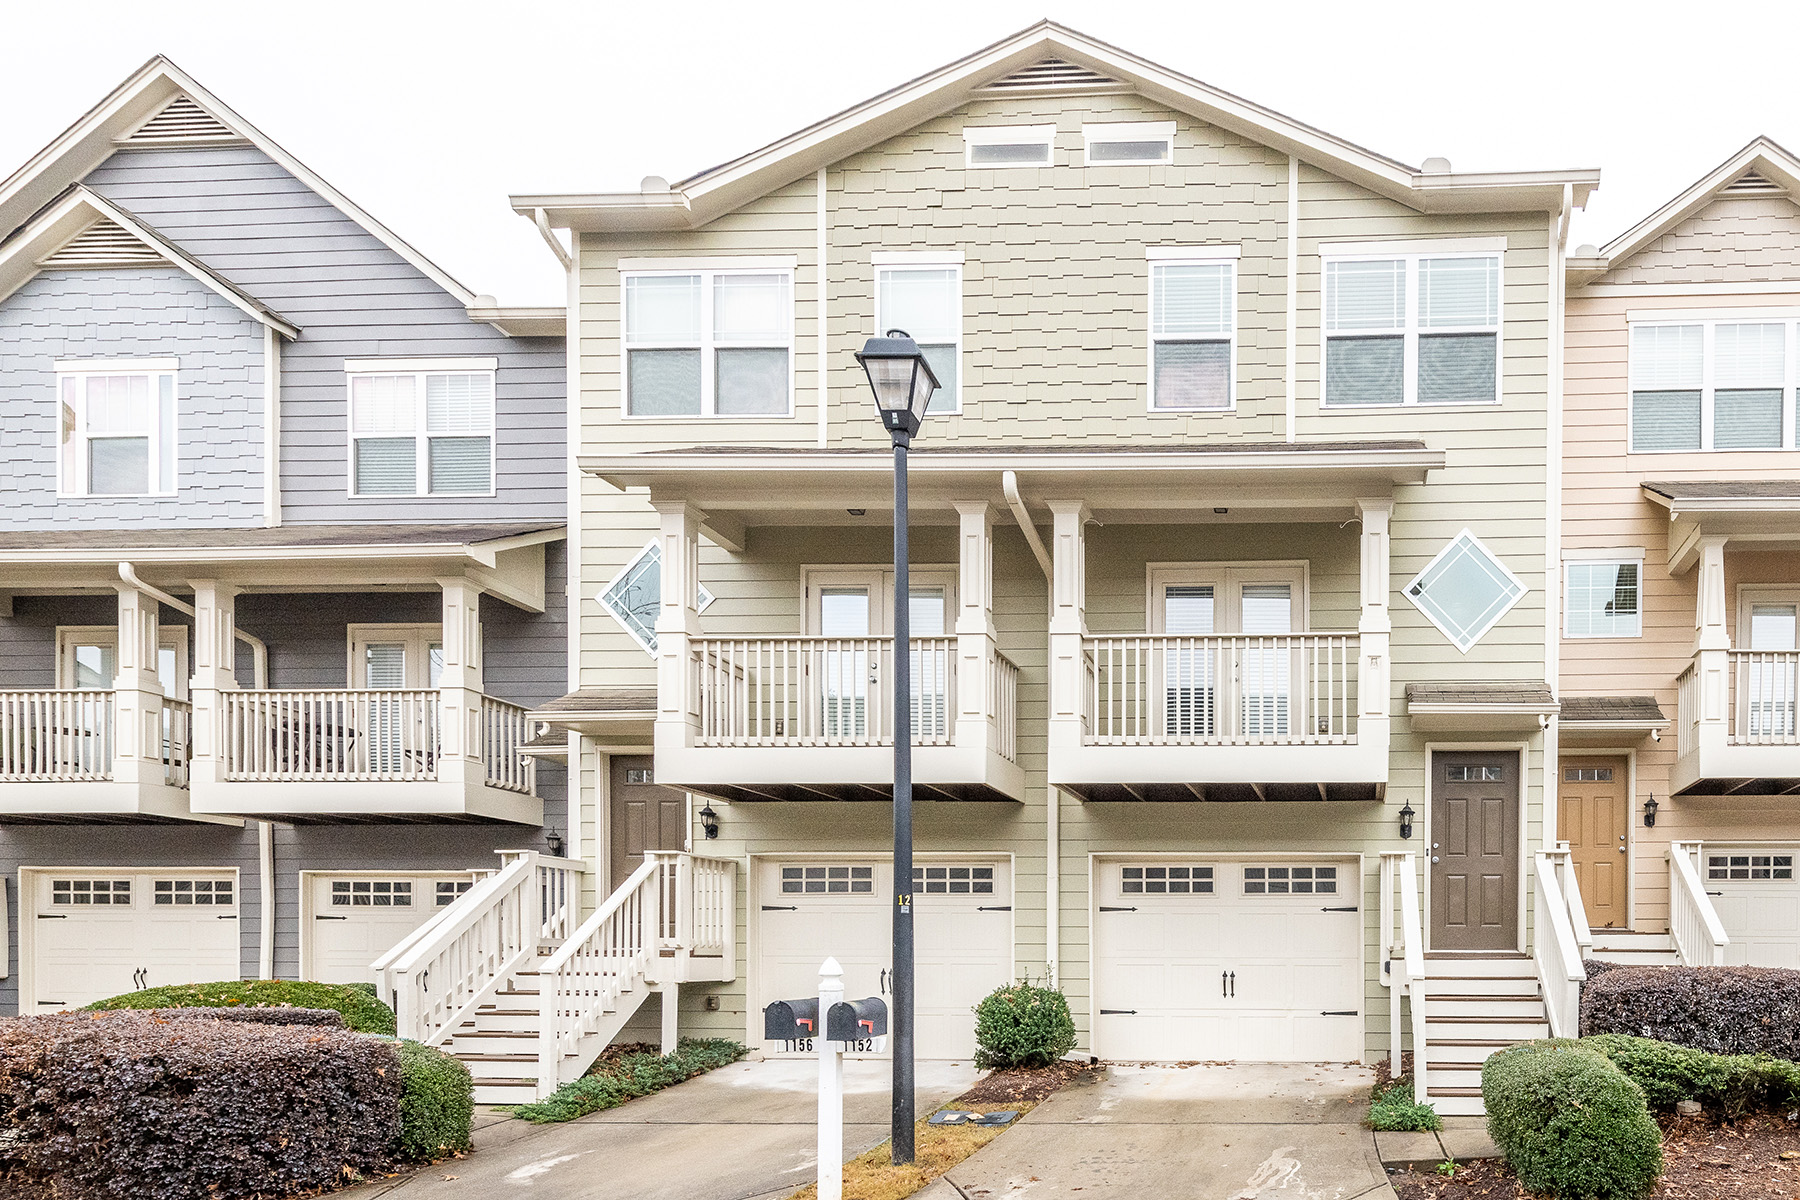 Townhouse for Sale at Awesome Townhome On The Westside 1152 Liberty Pkwy Atlanta, Georgia 30318 United States